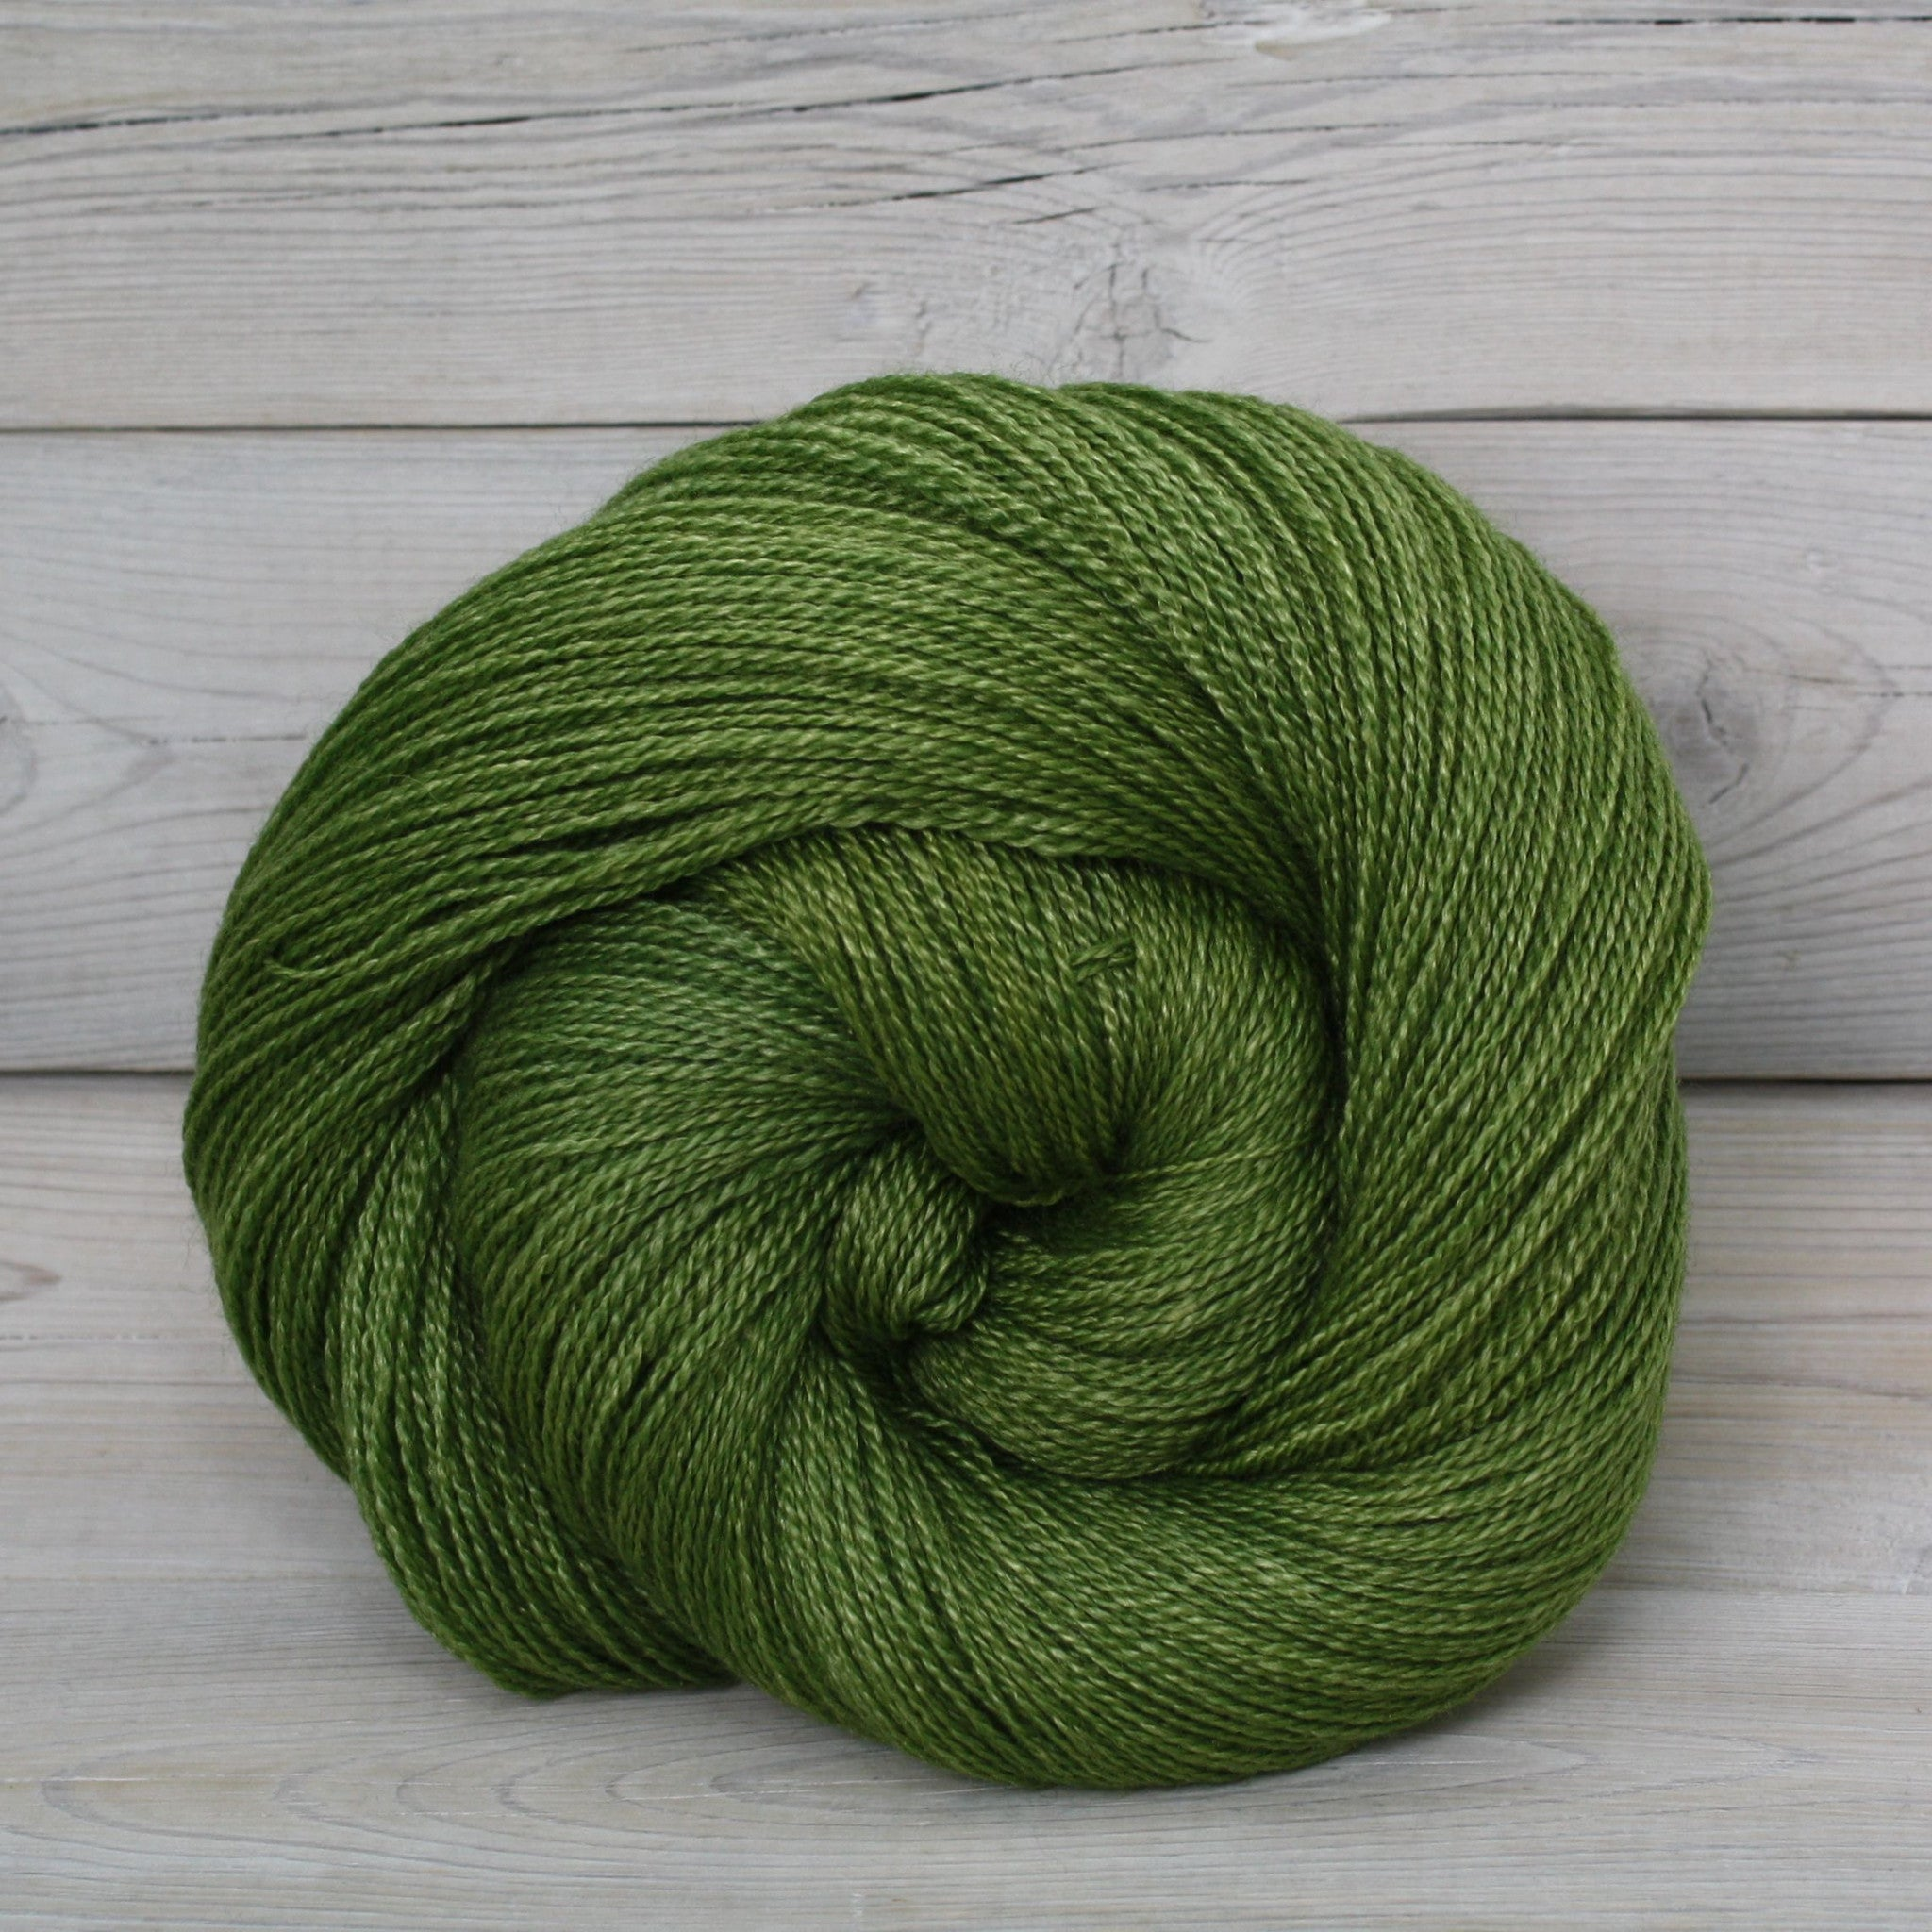 Luna Grey Fiber Arts Starbright Yarn | Colorway: Moss